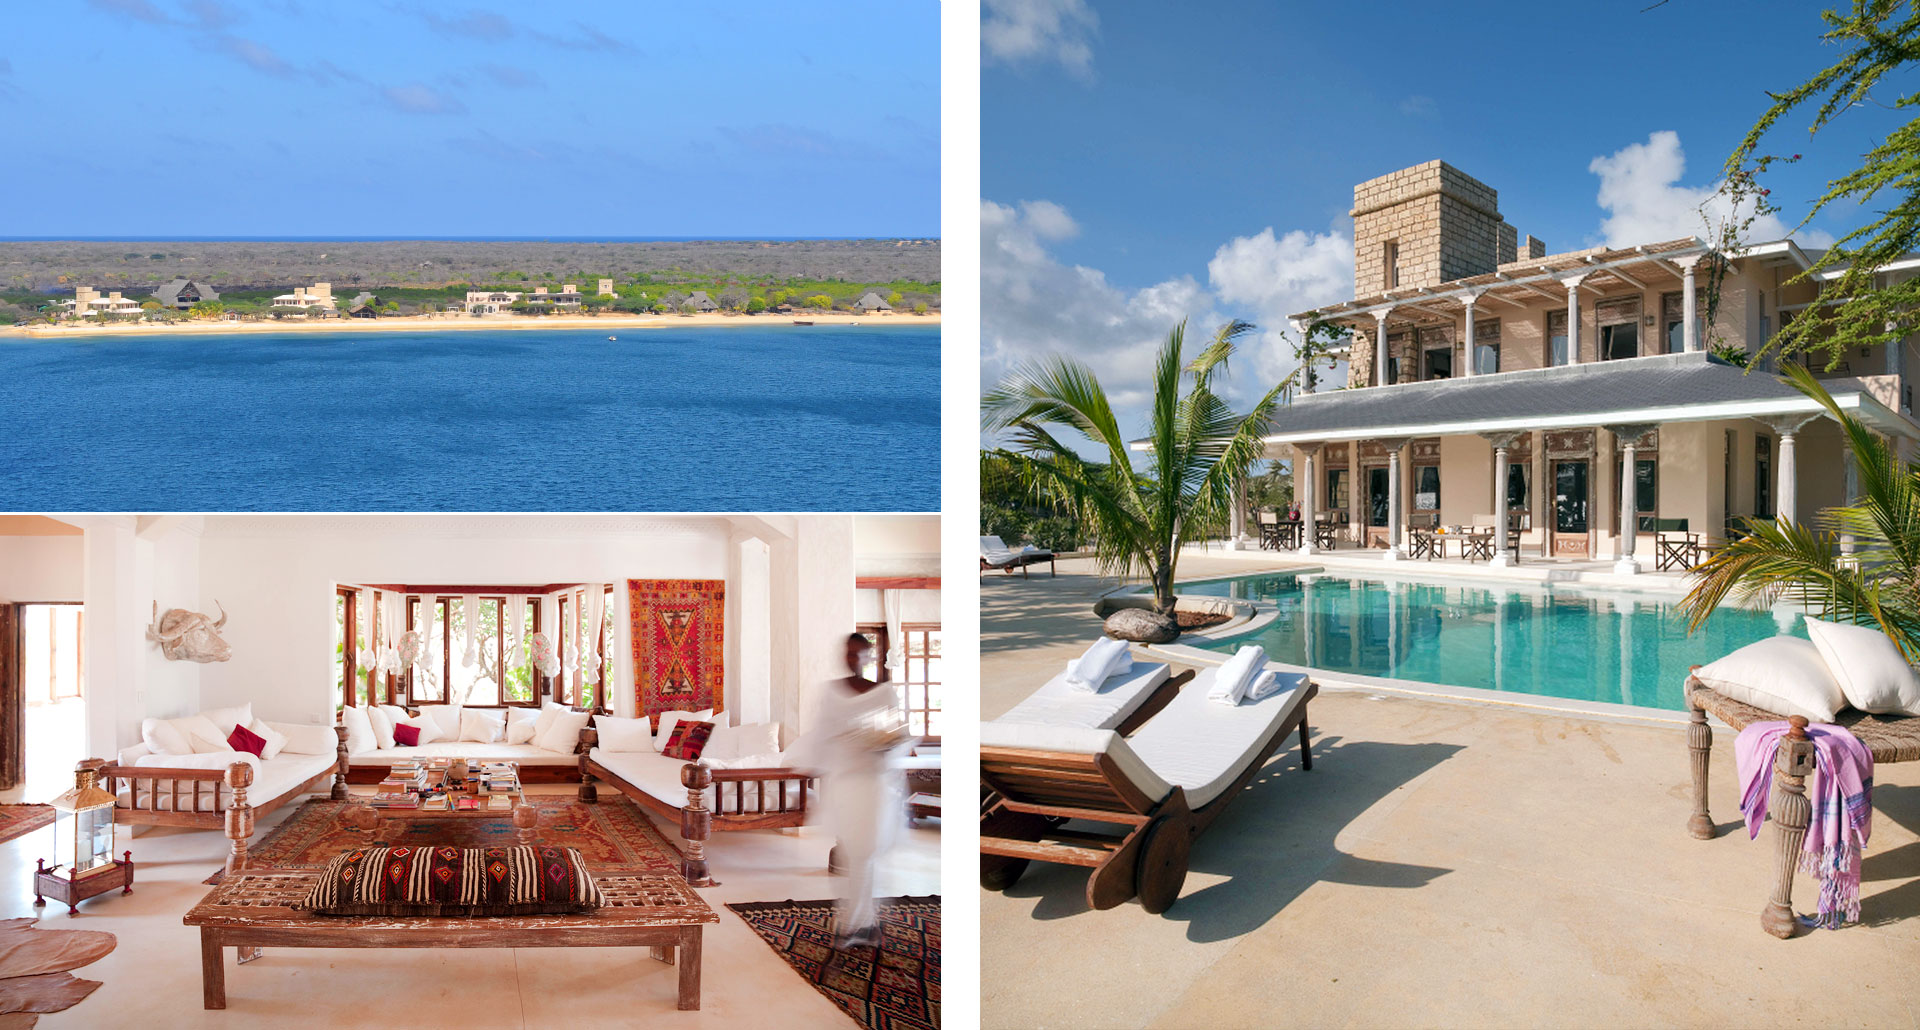 The Majlis Resort - boutique hotel in Lamu